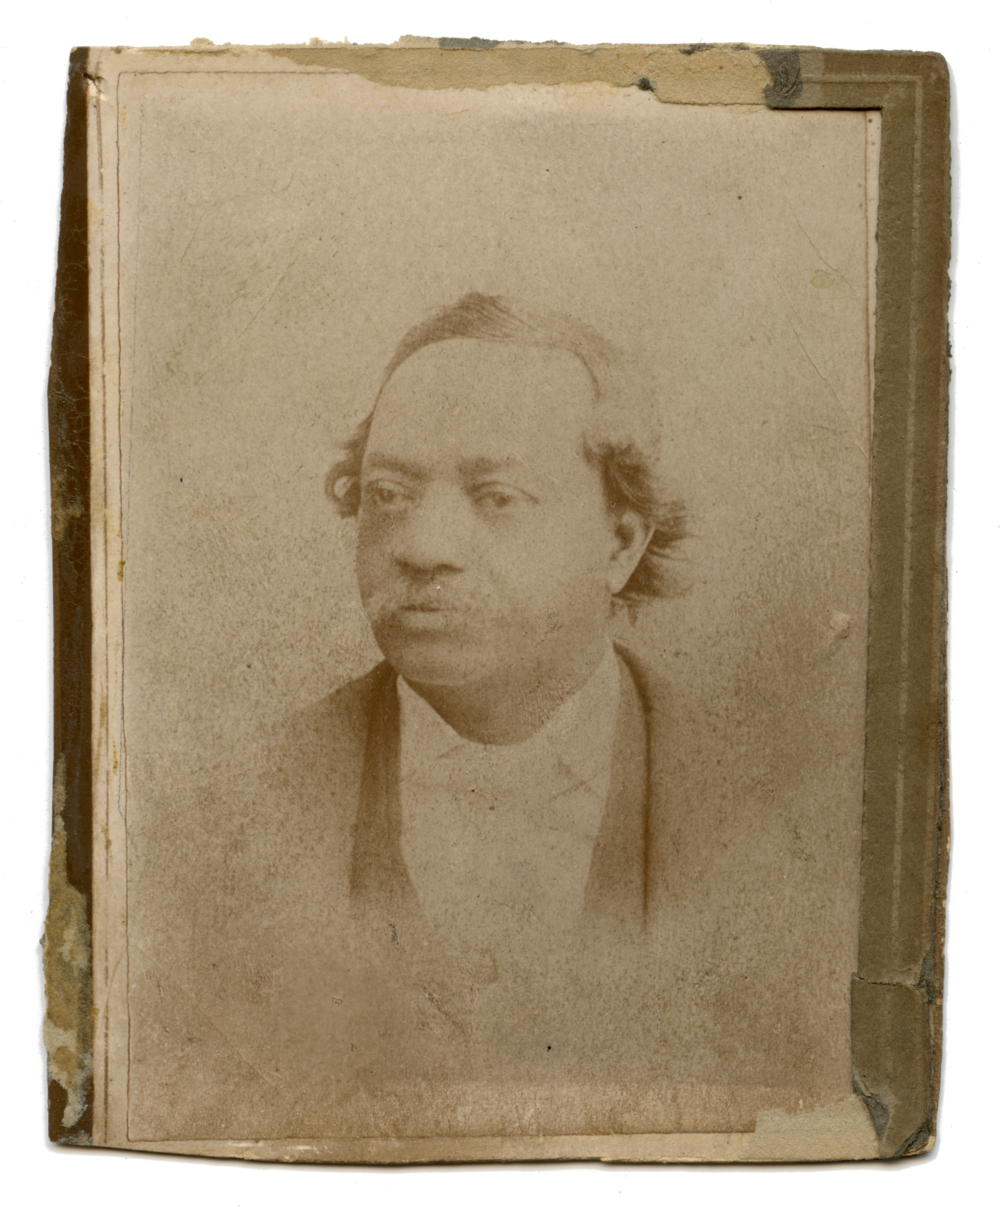 Author Maureen Egan discovered this long-hidden image, the only known photographic portrait of John Dabney, in 2015 at The Valentine, the preeminent museum of the history of Richmond, Virginia. (Displayed here courtesy of The Valentine.)